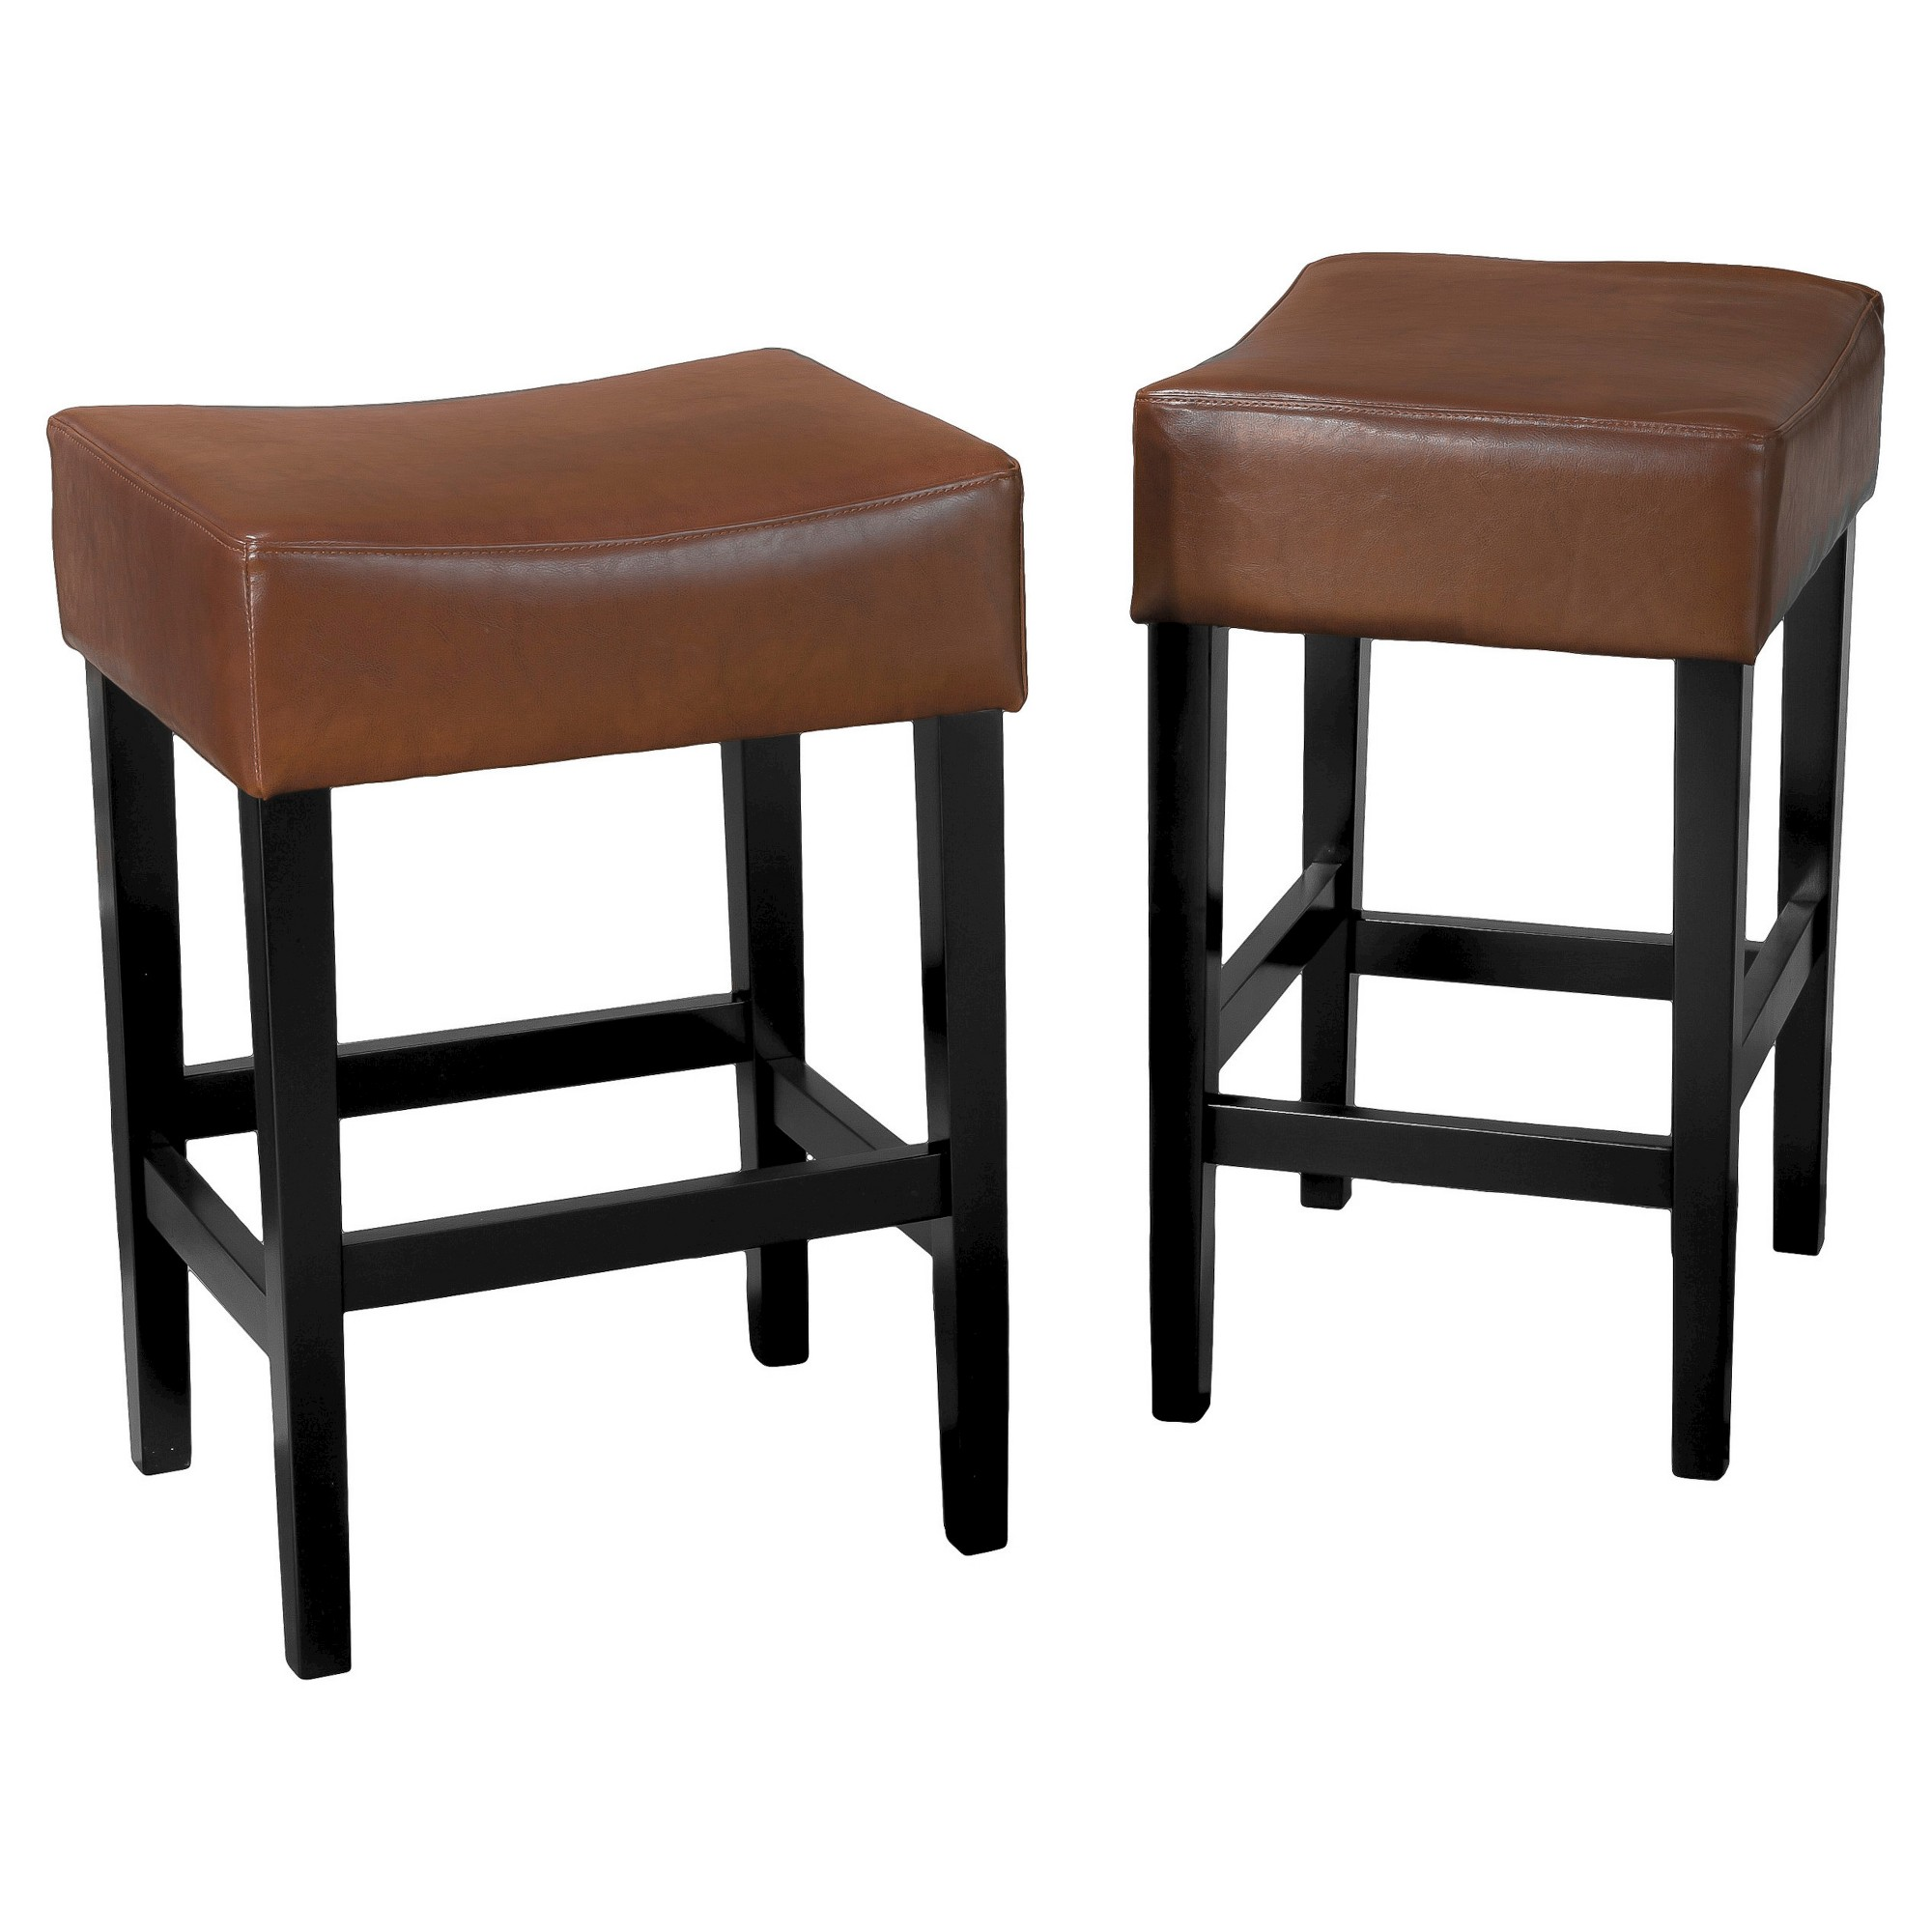 Lopez Backless Leather 25 5 Counter Stool Hazelnut Set Of 2 Christopher Knight Home Light Leather Counter Stools Counter Stools Backless Counter Stools